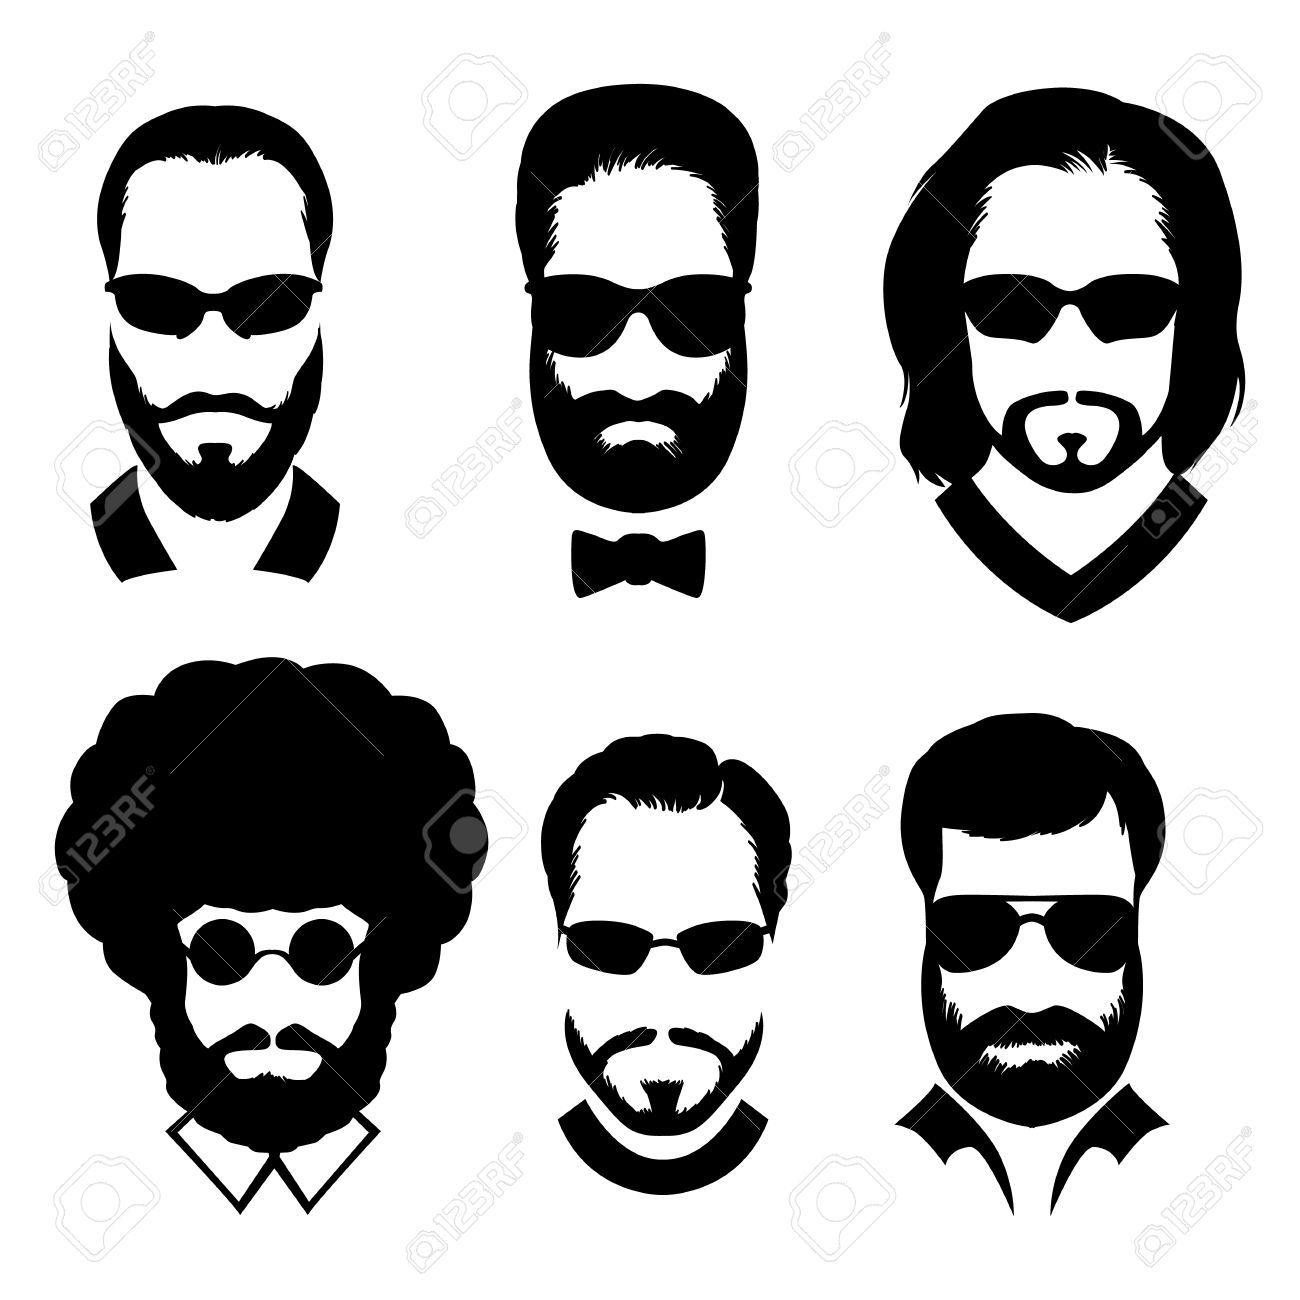 png freeuse Beard clipart bearded man. Image result for with